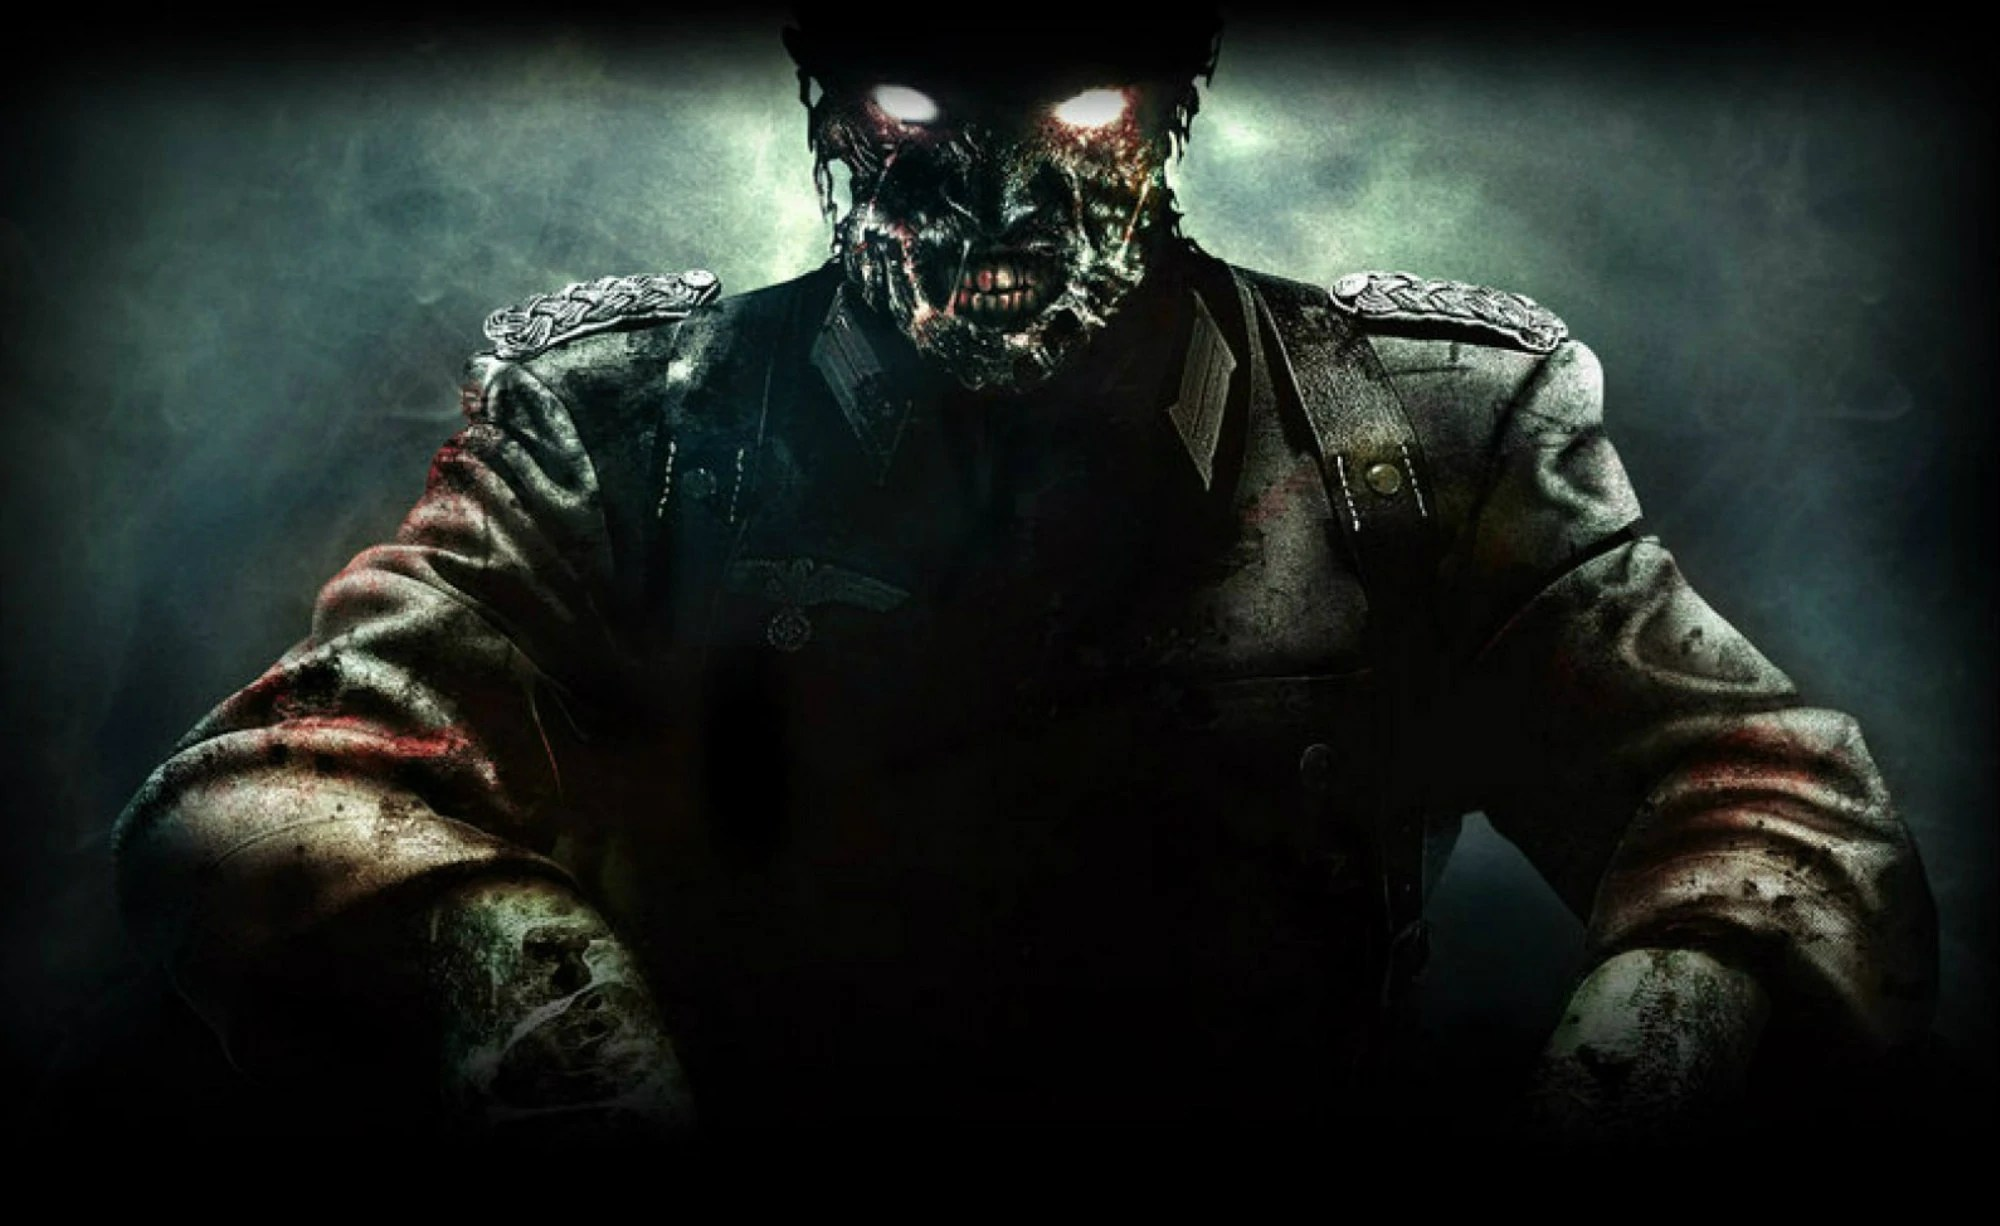 Image - Wiki-background | Call of Duty Zombies Wiki | FANDOM powered by Wikia